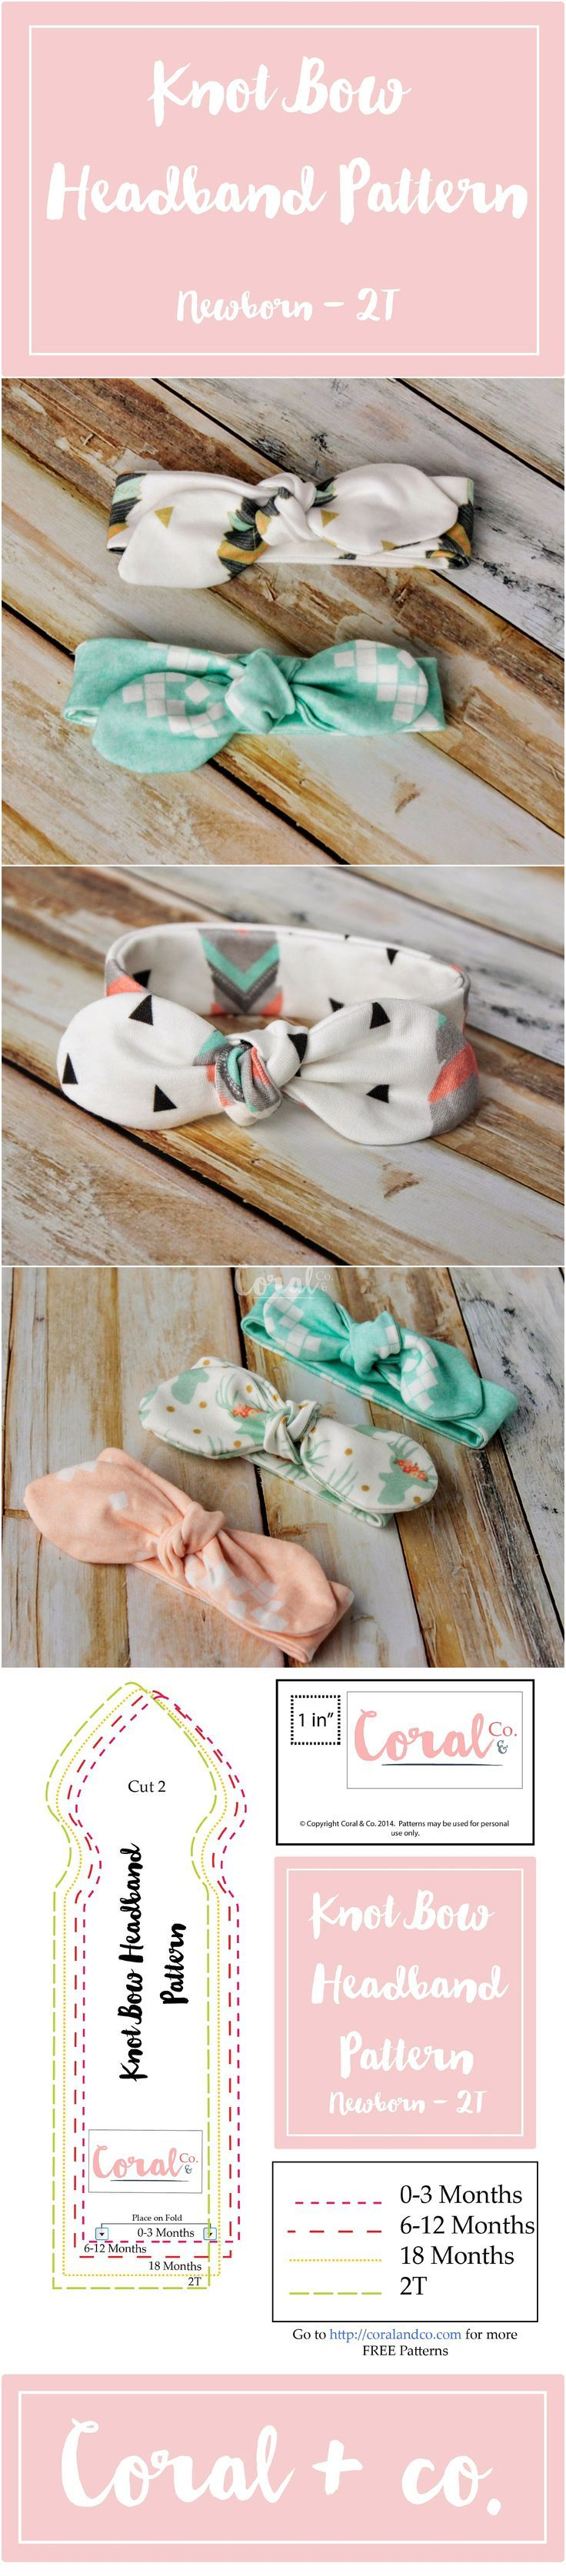 knot bow headband tutorial